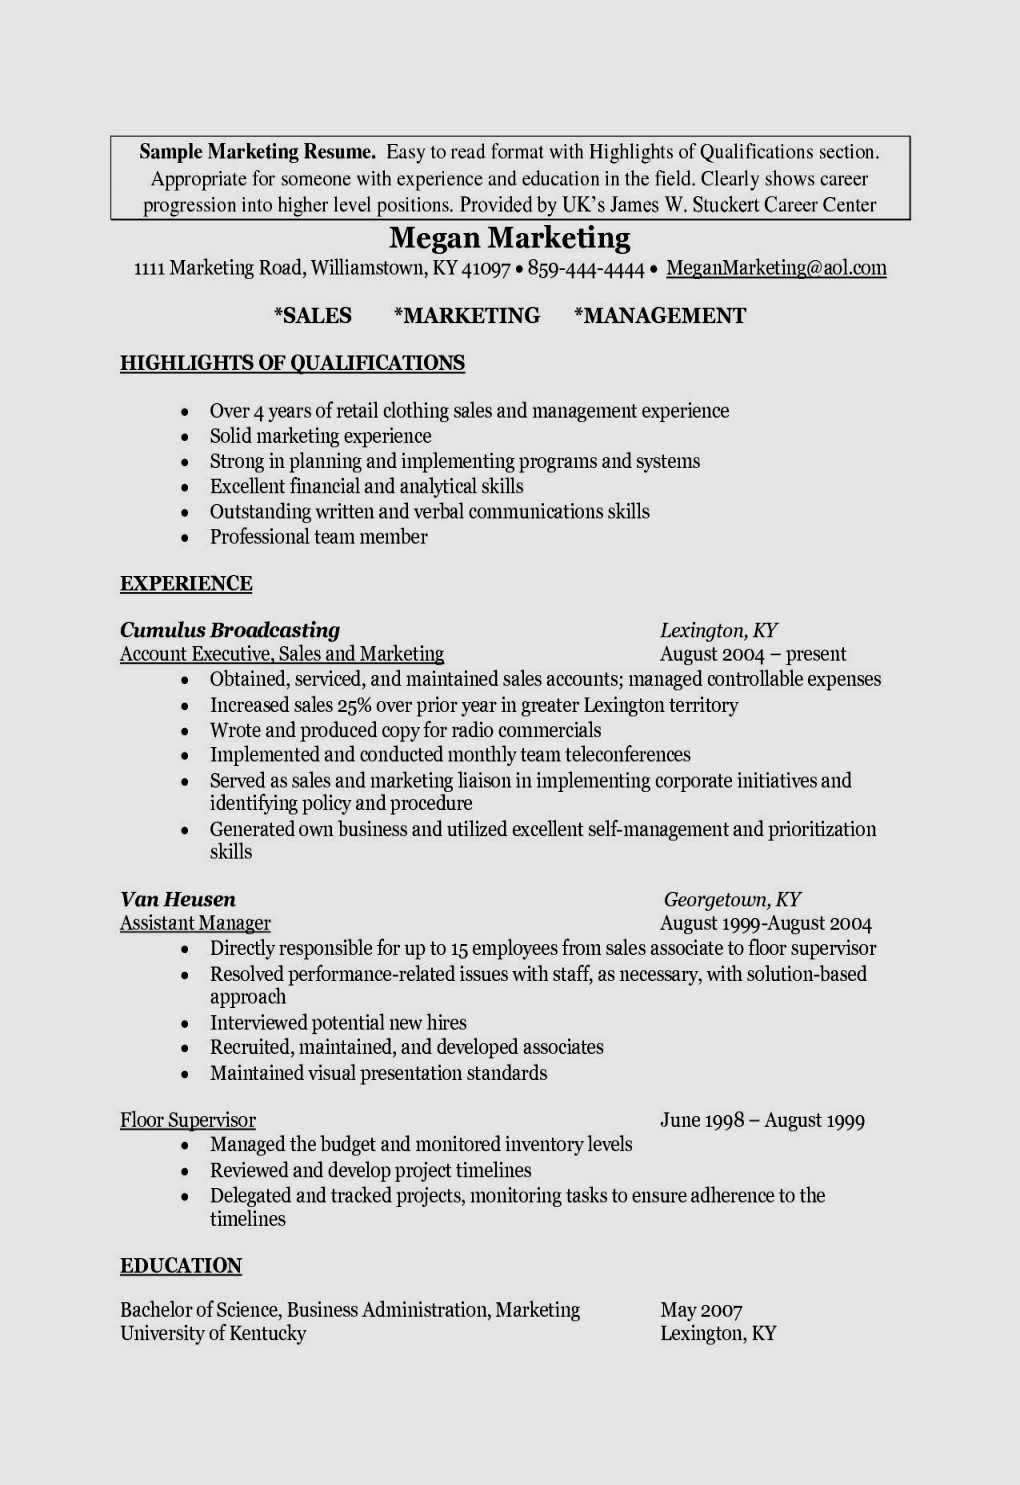 Marketing Manager Resume Template - 20 Fresh Cover Letter Marketing assistant Free Resume Templates